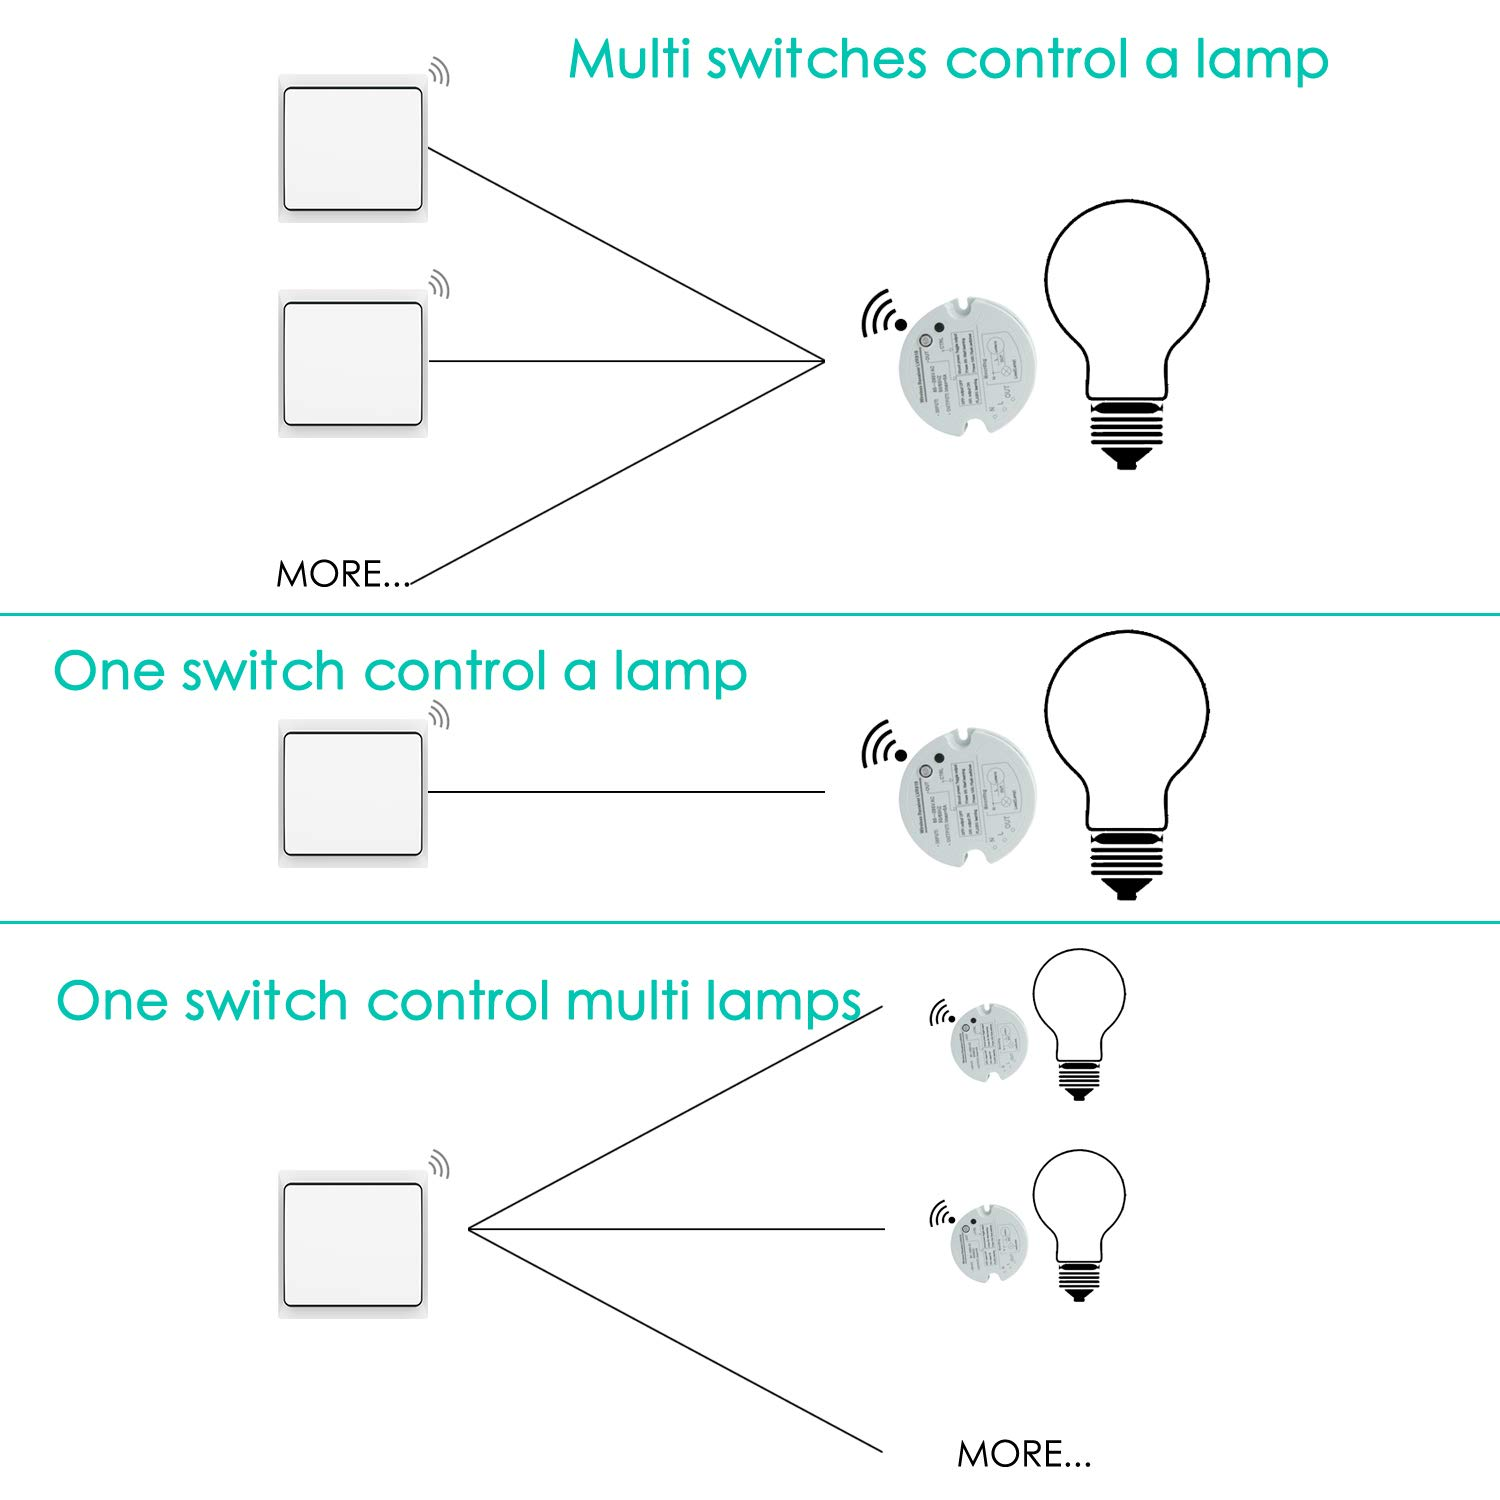 Crelander Wireless Light Switch Kit No Wiring Battery Required Two Switches To One Besides Ceiling Fan Diagram Rf Remote Receiver 100 260 Feet Range For House Lightning And Appliancesswitch